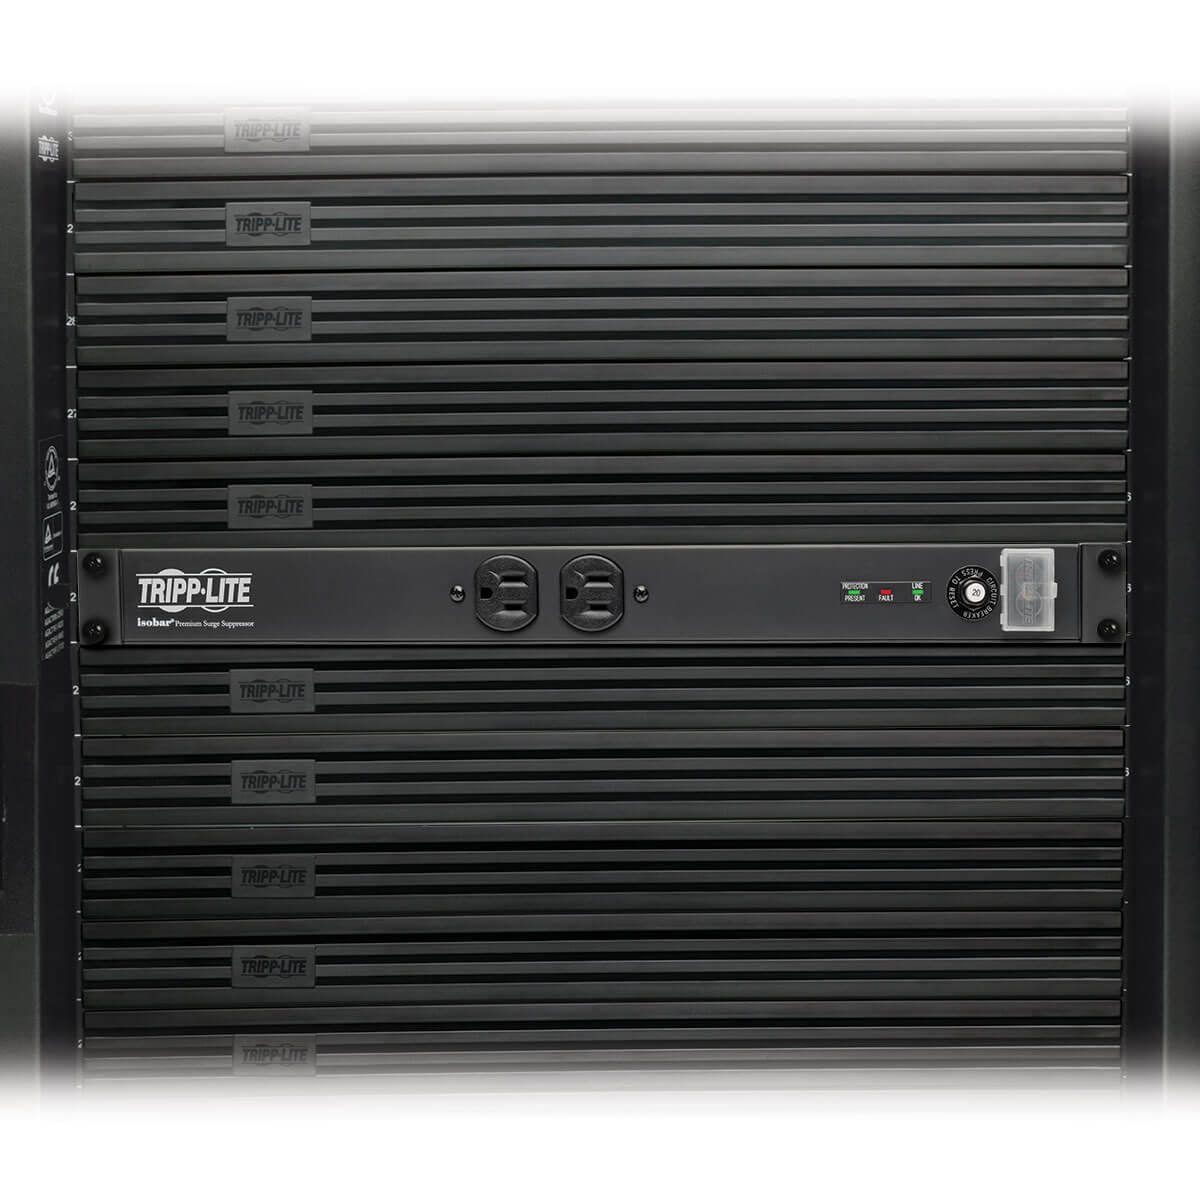 Tripp Lite Isobar 12 Outlet Network Server Surge Wiring Diagram Protector 15 Ft Cord W 5 20p Plug 3840 Joules 1u Rack Mount Metal 25000 Insurance